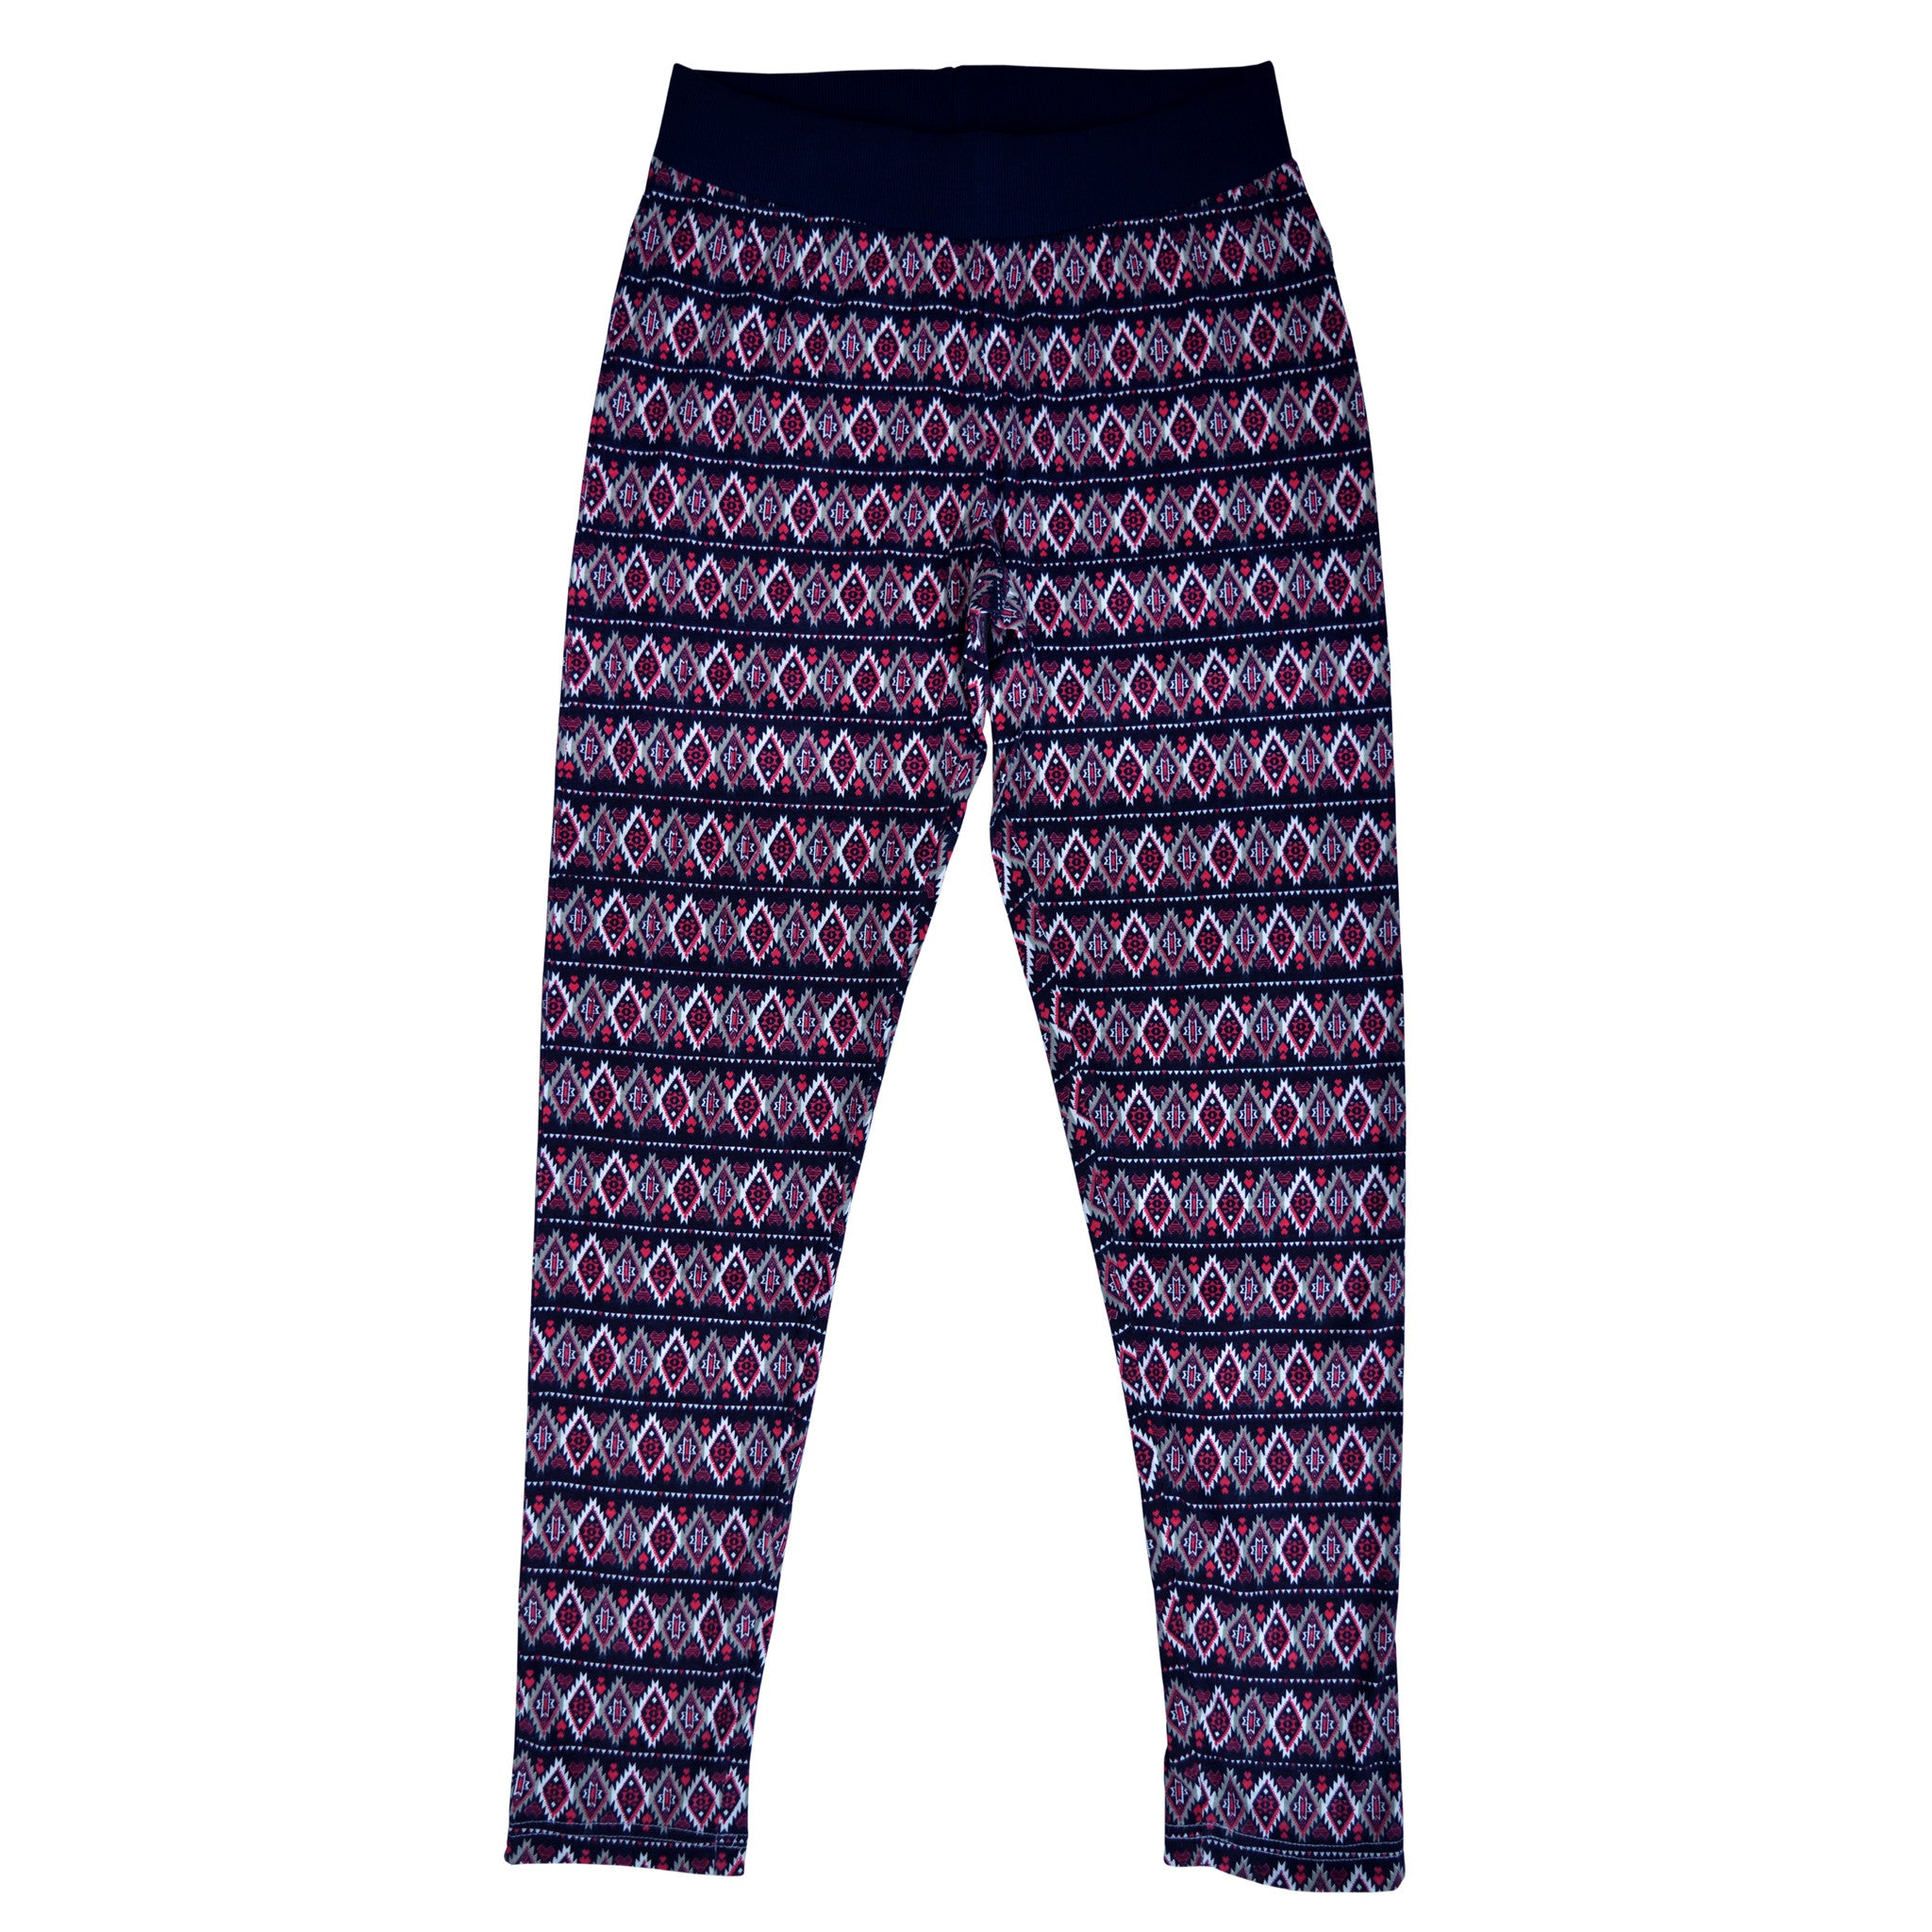 1add7e6d6c7df3 Lady's Original Firetrap Multi Printed Jegging – At Your Door Step